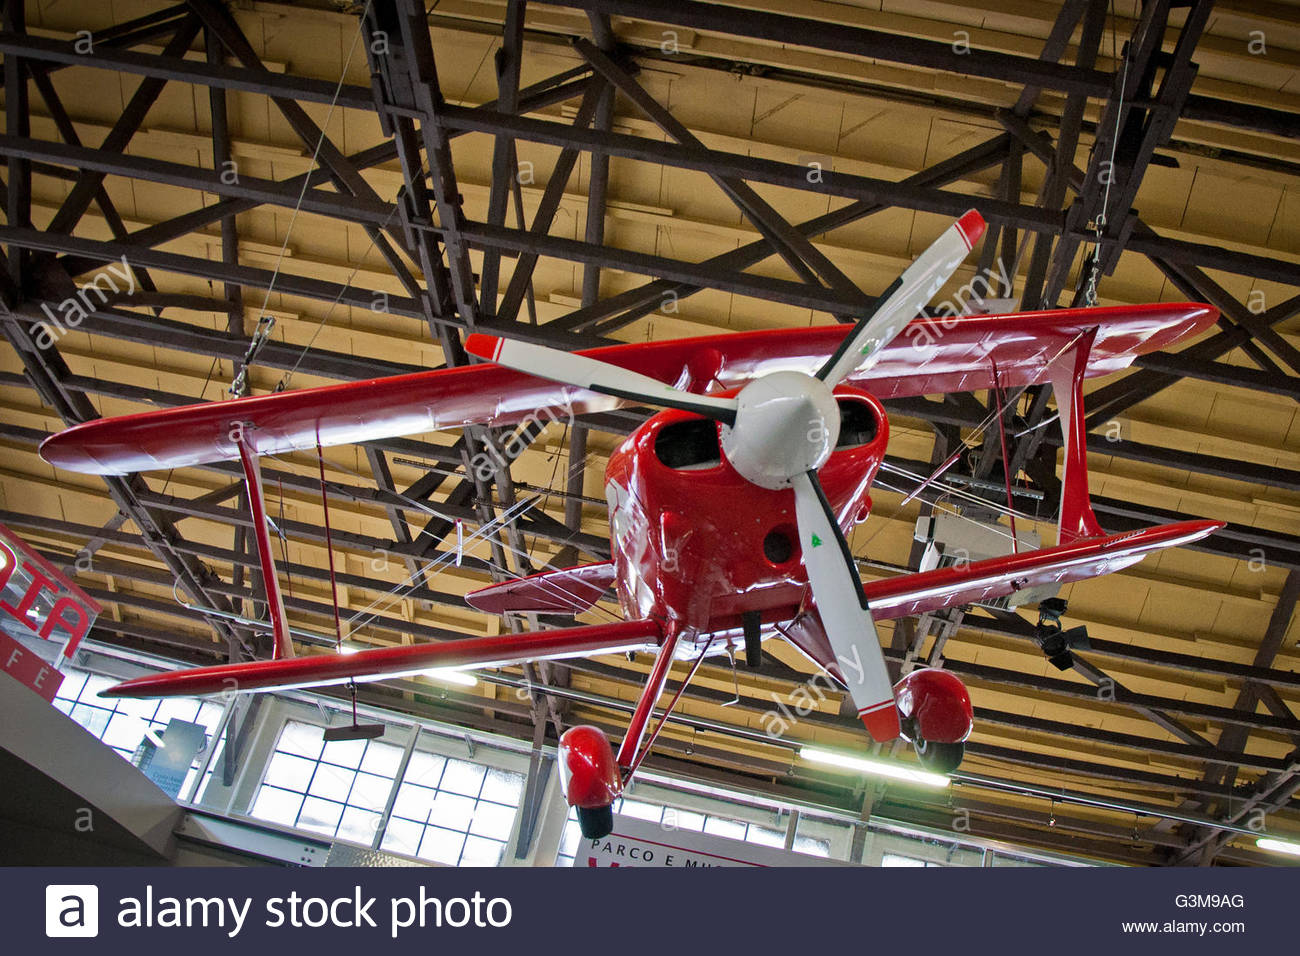 acrobatic biplane pitts S1T-GM special,volandia,park and museum of flight,somma lombardo,italy - Stock Image